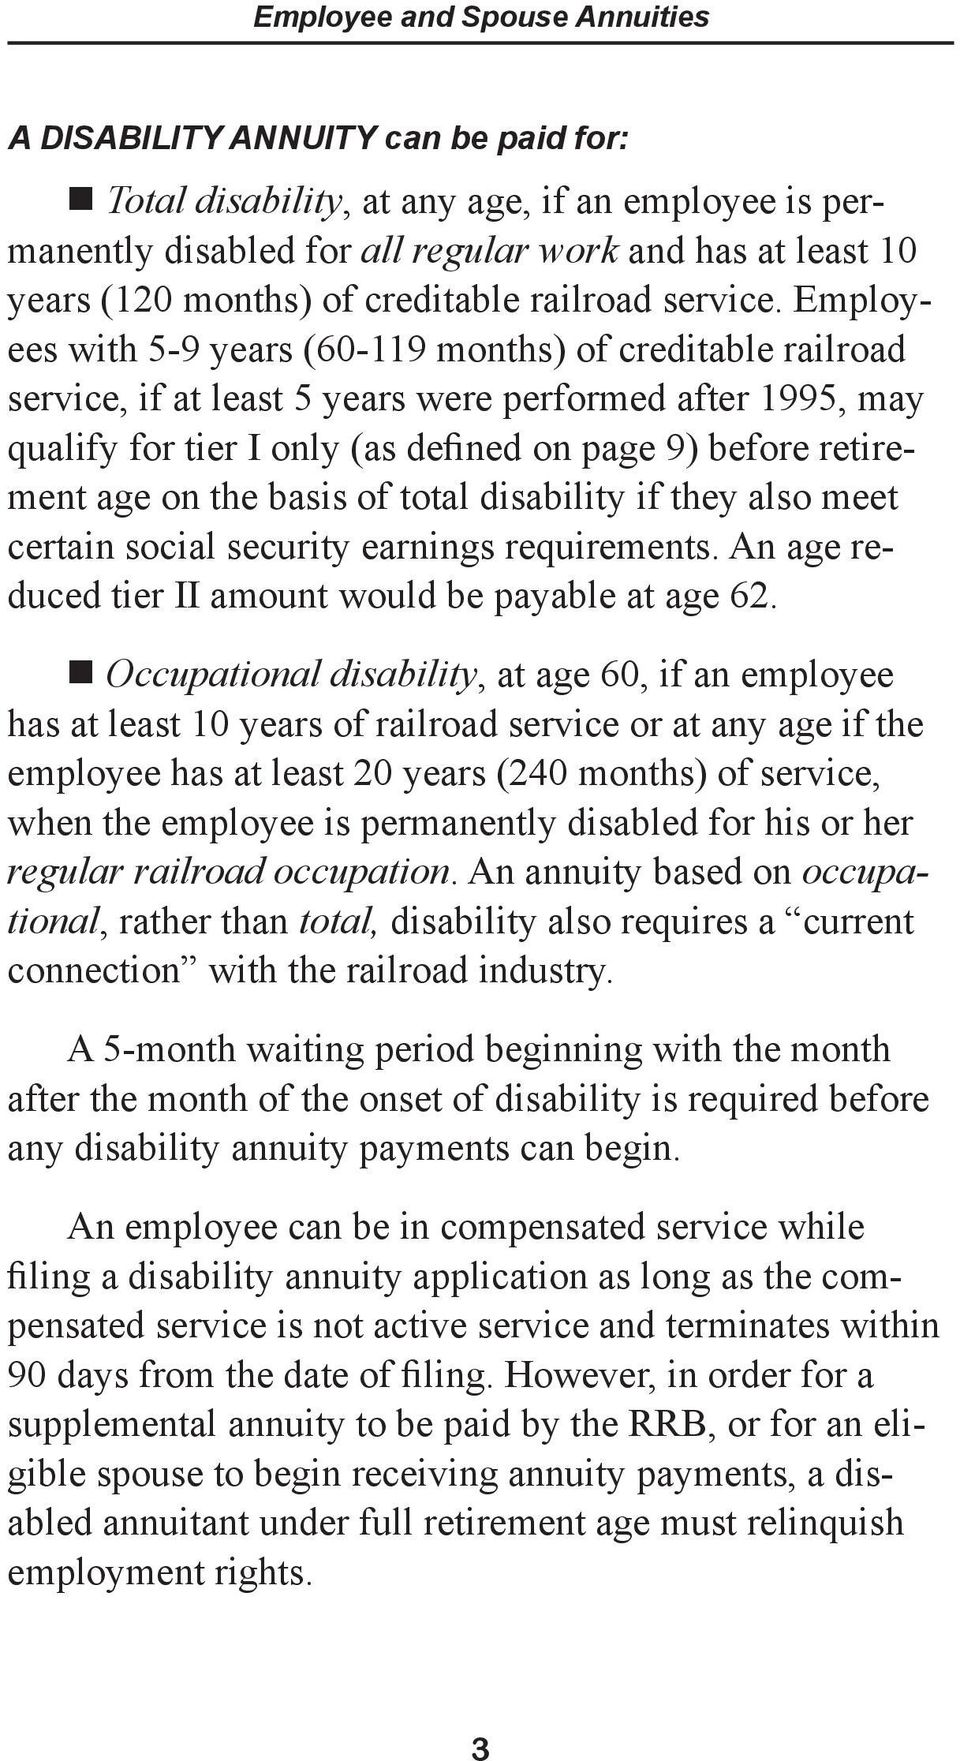 Employees with 5-9 years (60-119 months) of creditable railroad service, if at least 5 years were performed after 1995, may qualify for tier I only (as defined on page 9) before retirement age on the